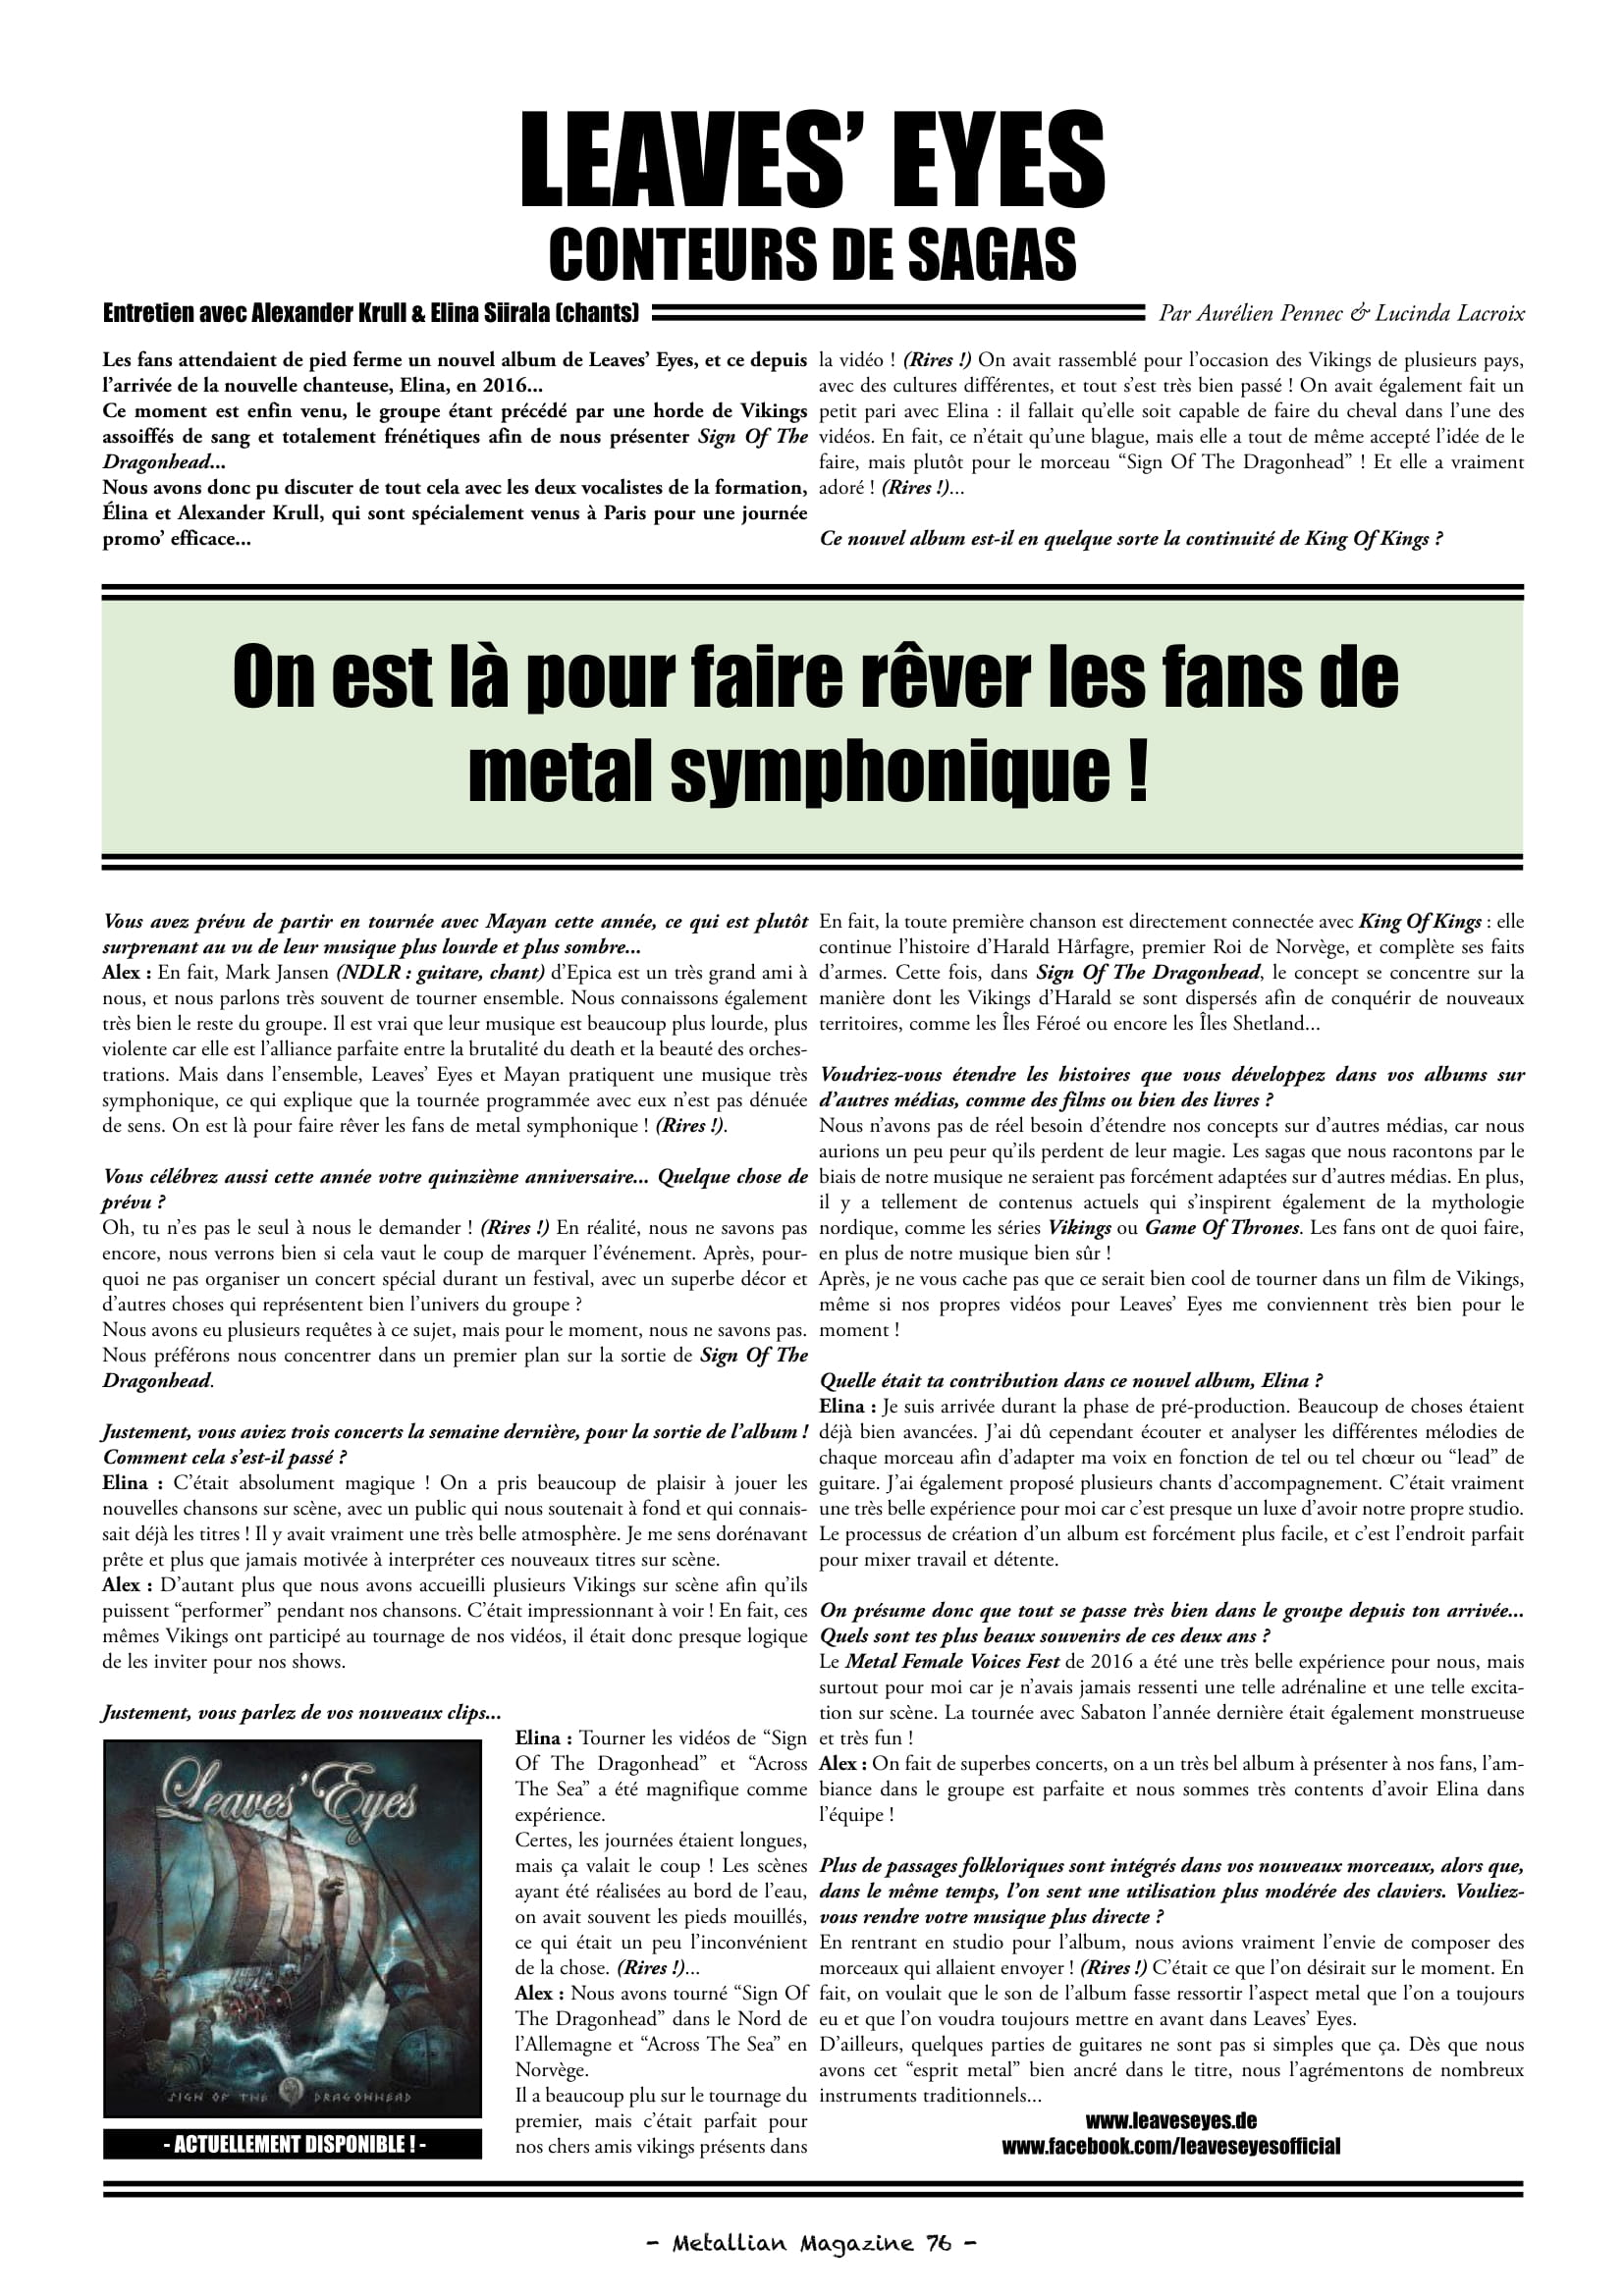 Interview LEAVE'S EYES Conteurs de sagas (Metallian) Archive à lire. Metall16